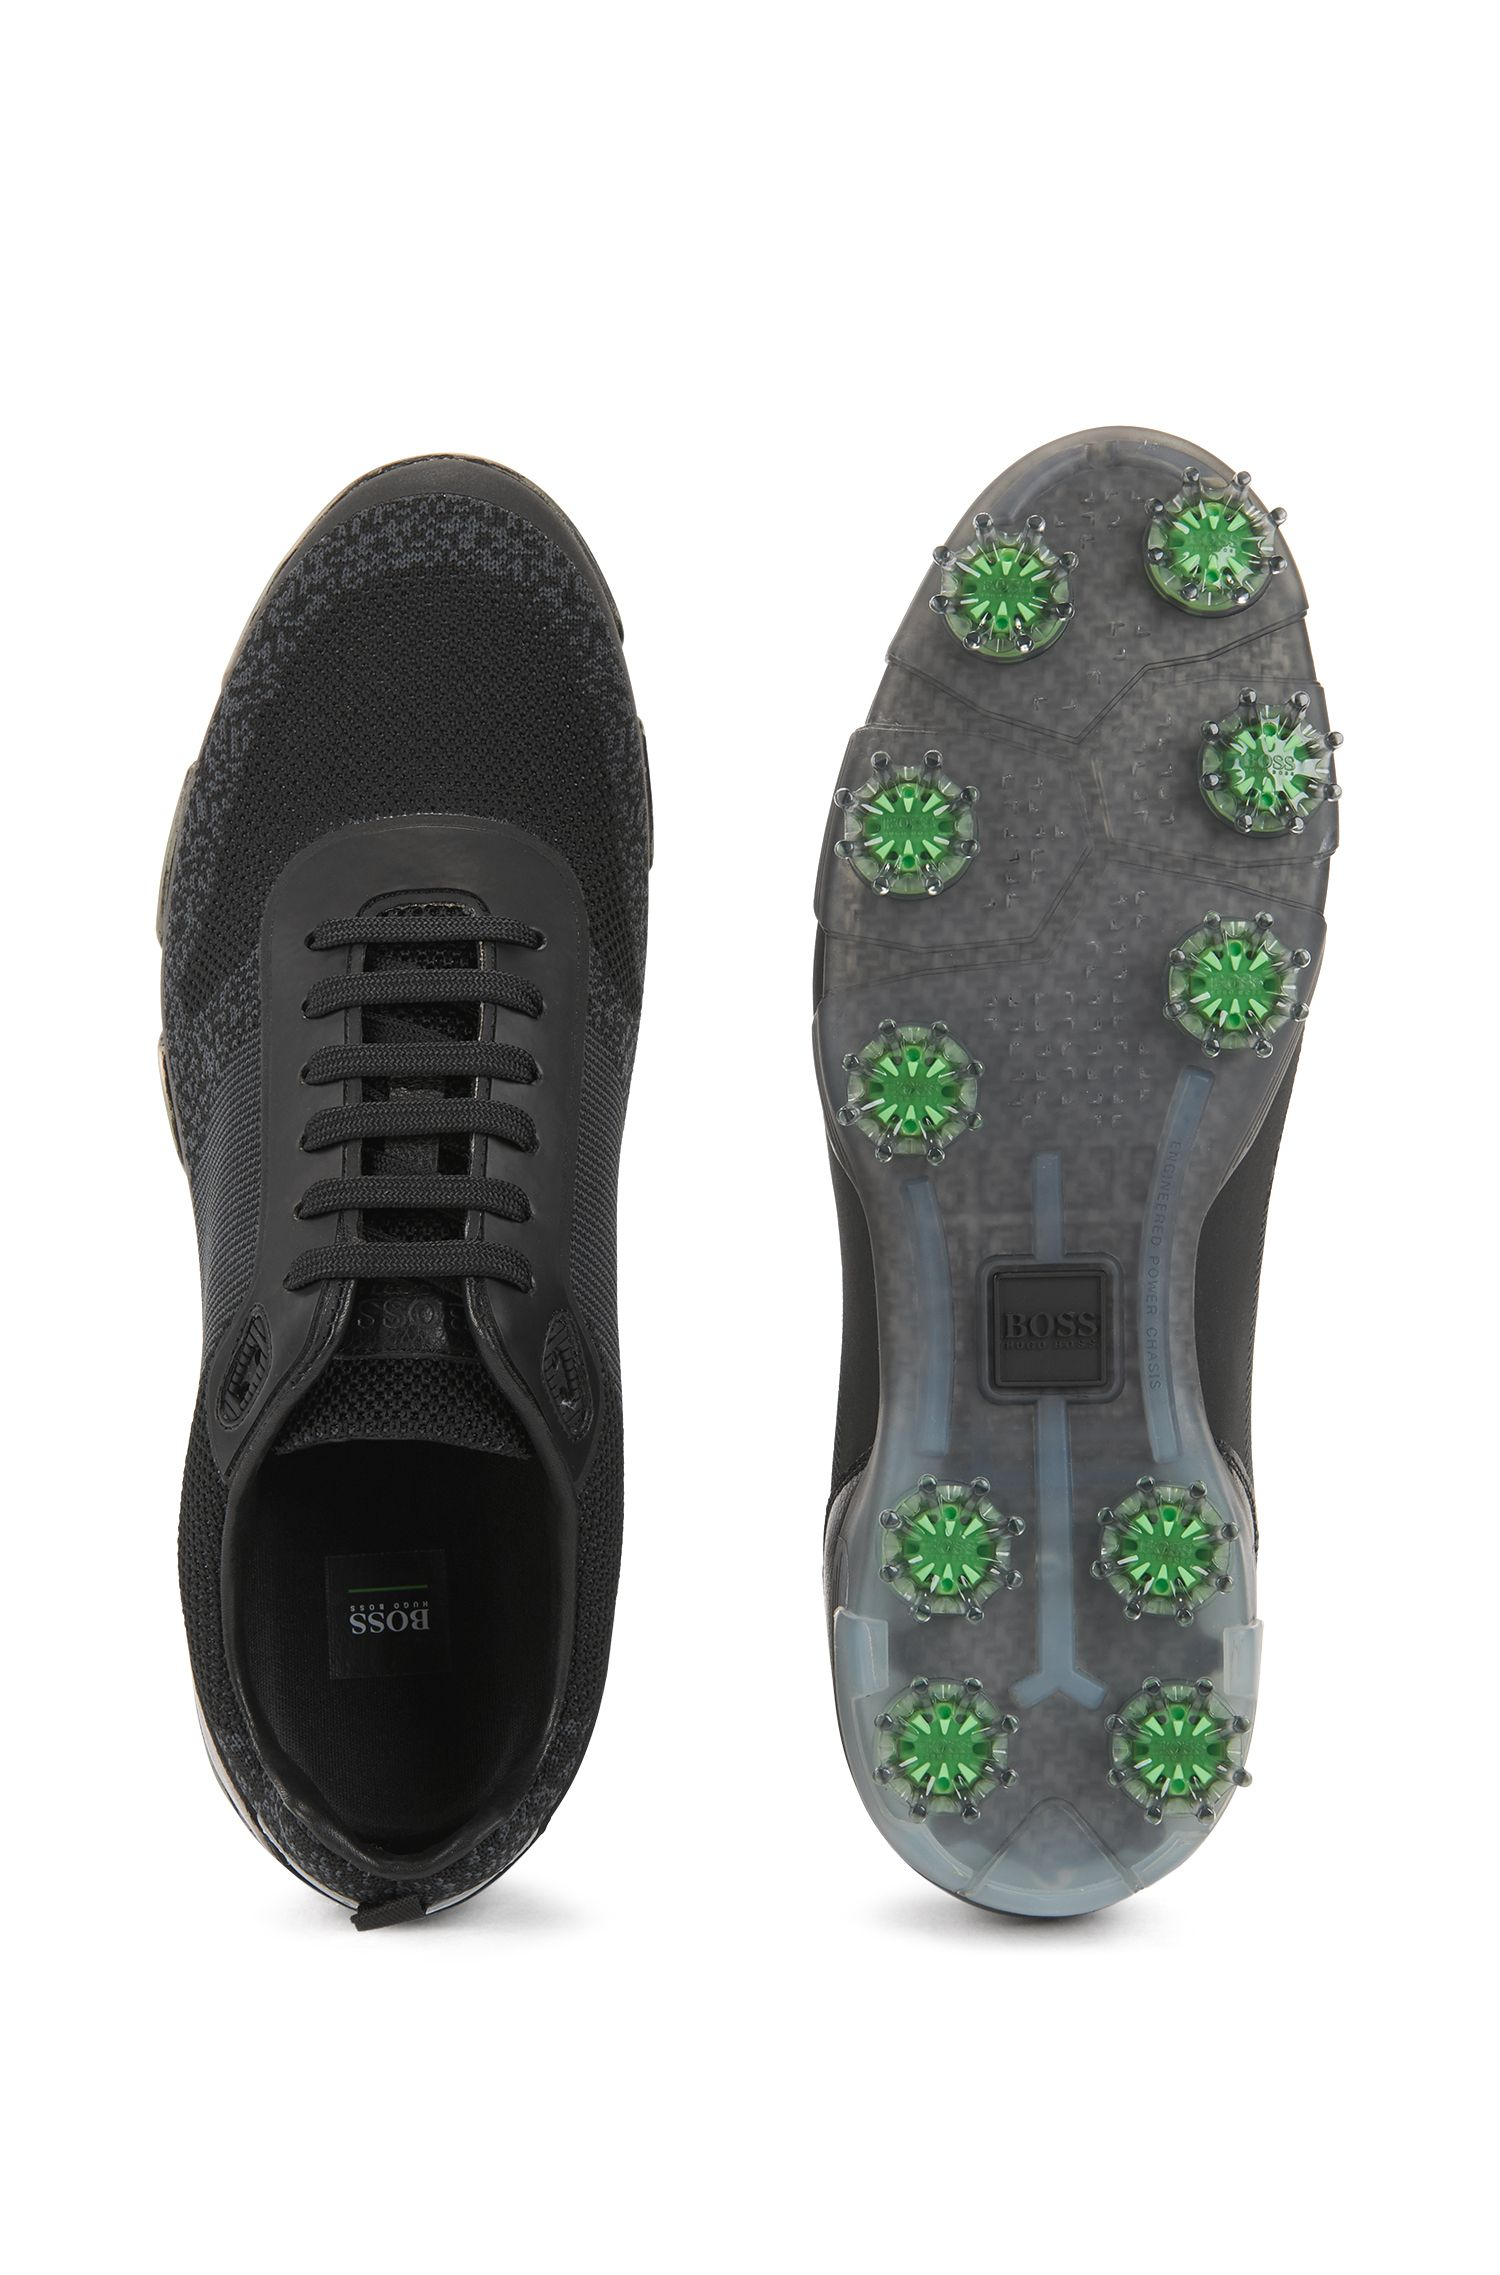 Lightweight golf shoes in water-resistant knitted jacquard